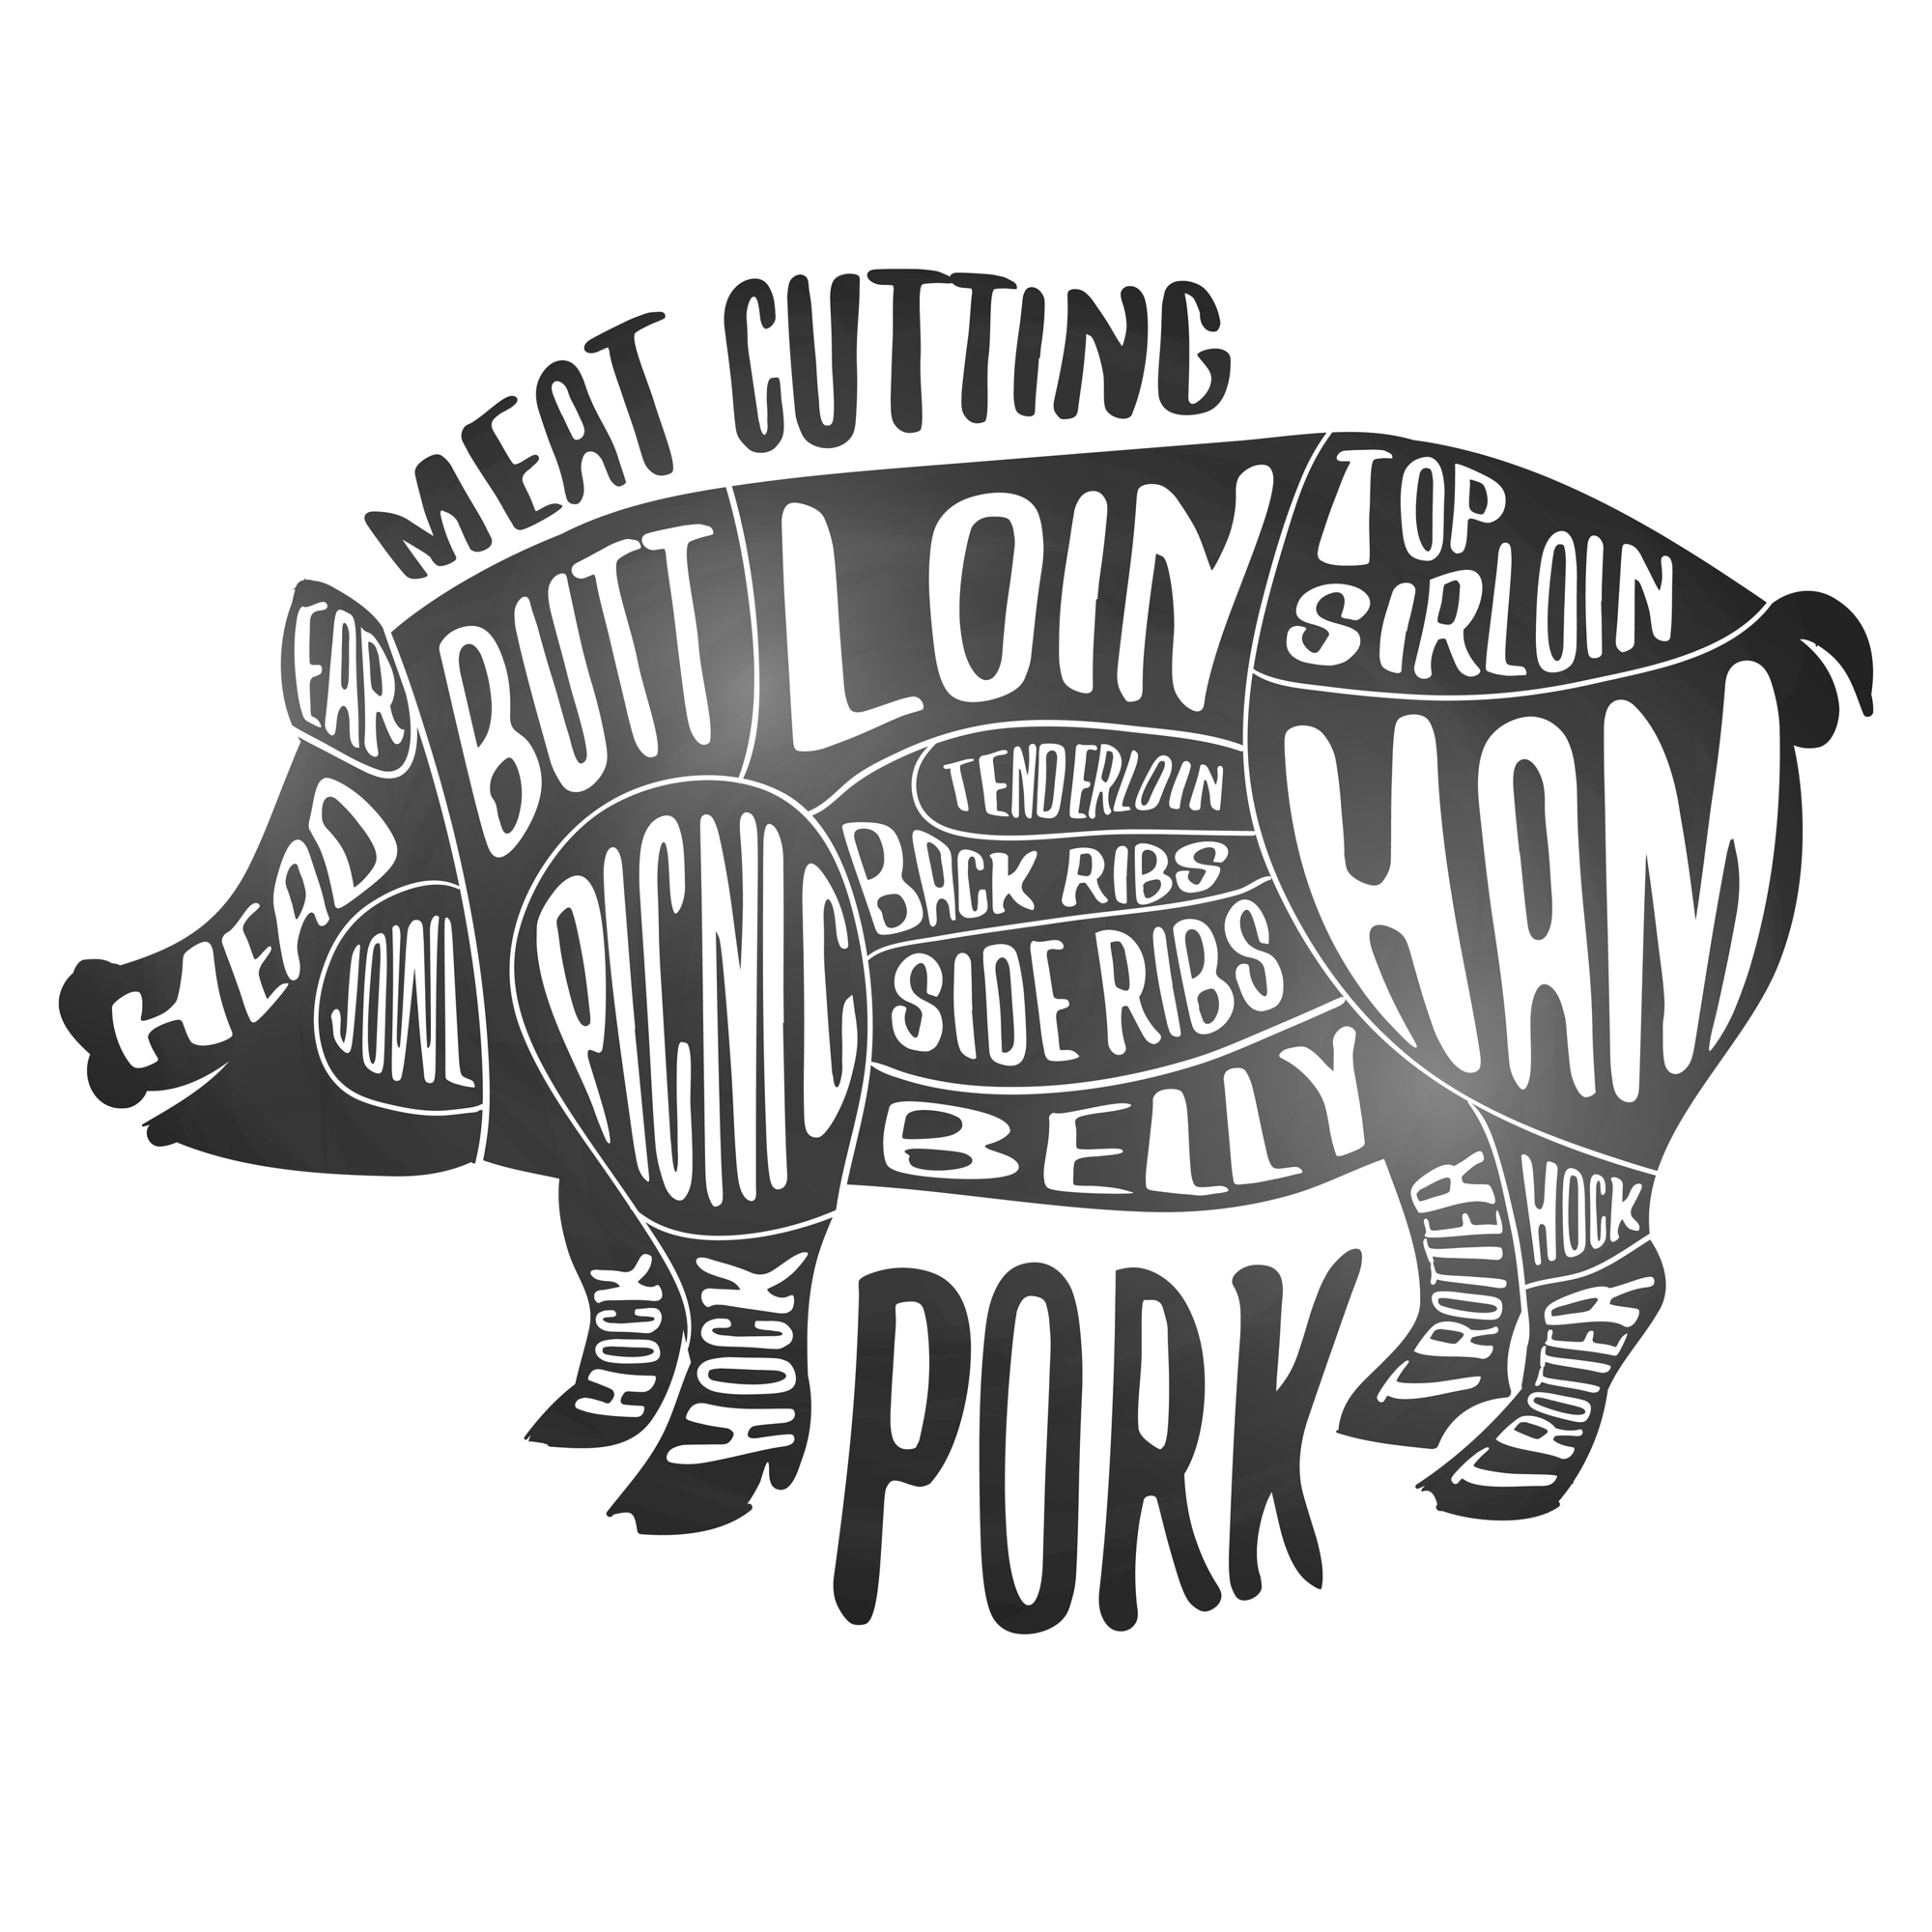 Pork parts: the difference between pork loin and pork tenderloin.